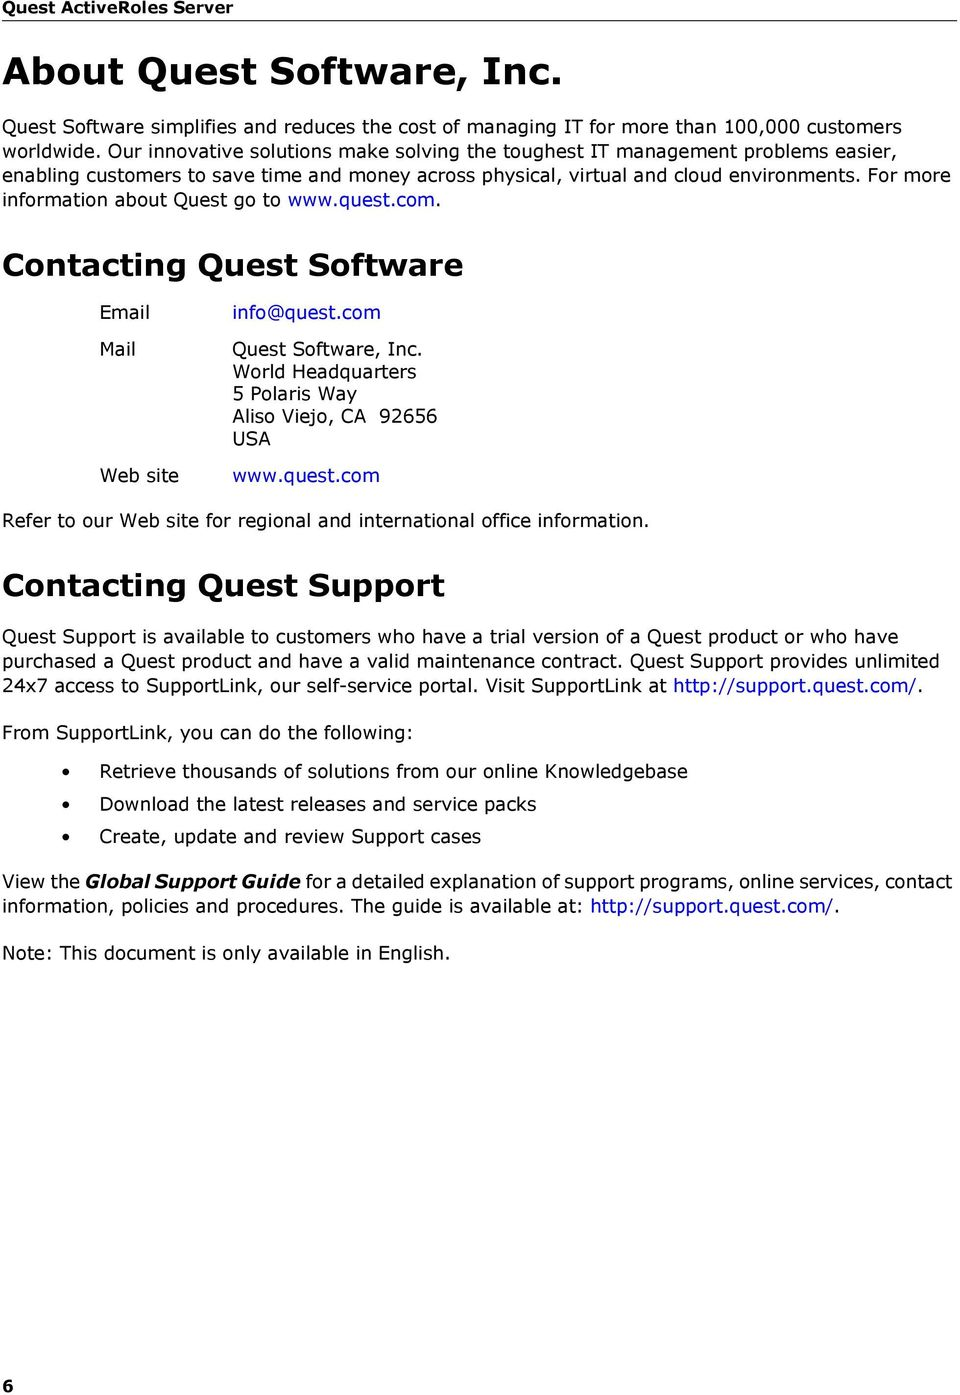 For more information about Quest go to www.quest.com. Contacting Quest Software Email Mail Web site info@quest.com Quest Software, Inc. World Headquarters 5 Polaris Way Aliso Viejo, CA 92656 USA www.